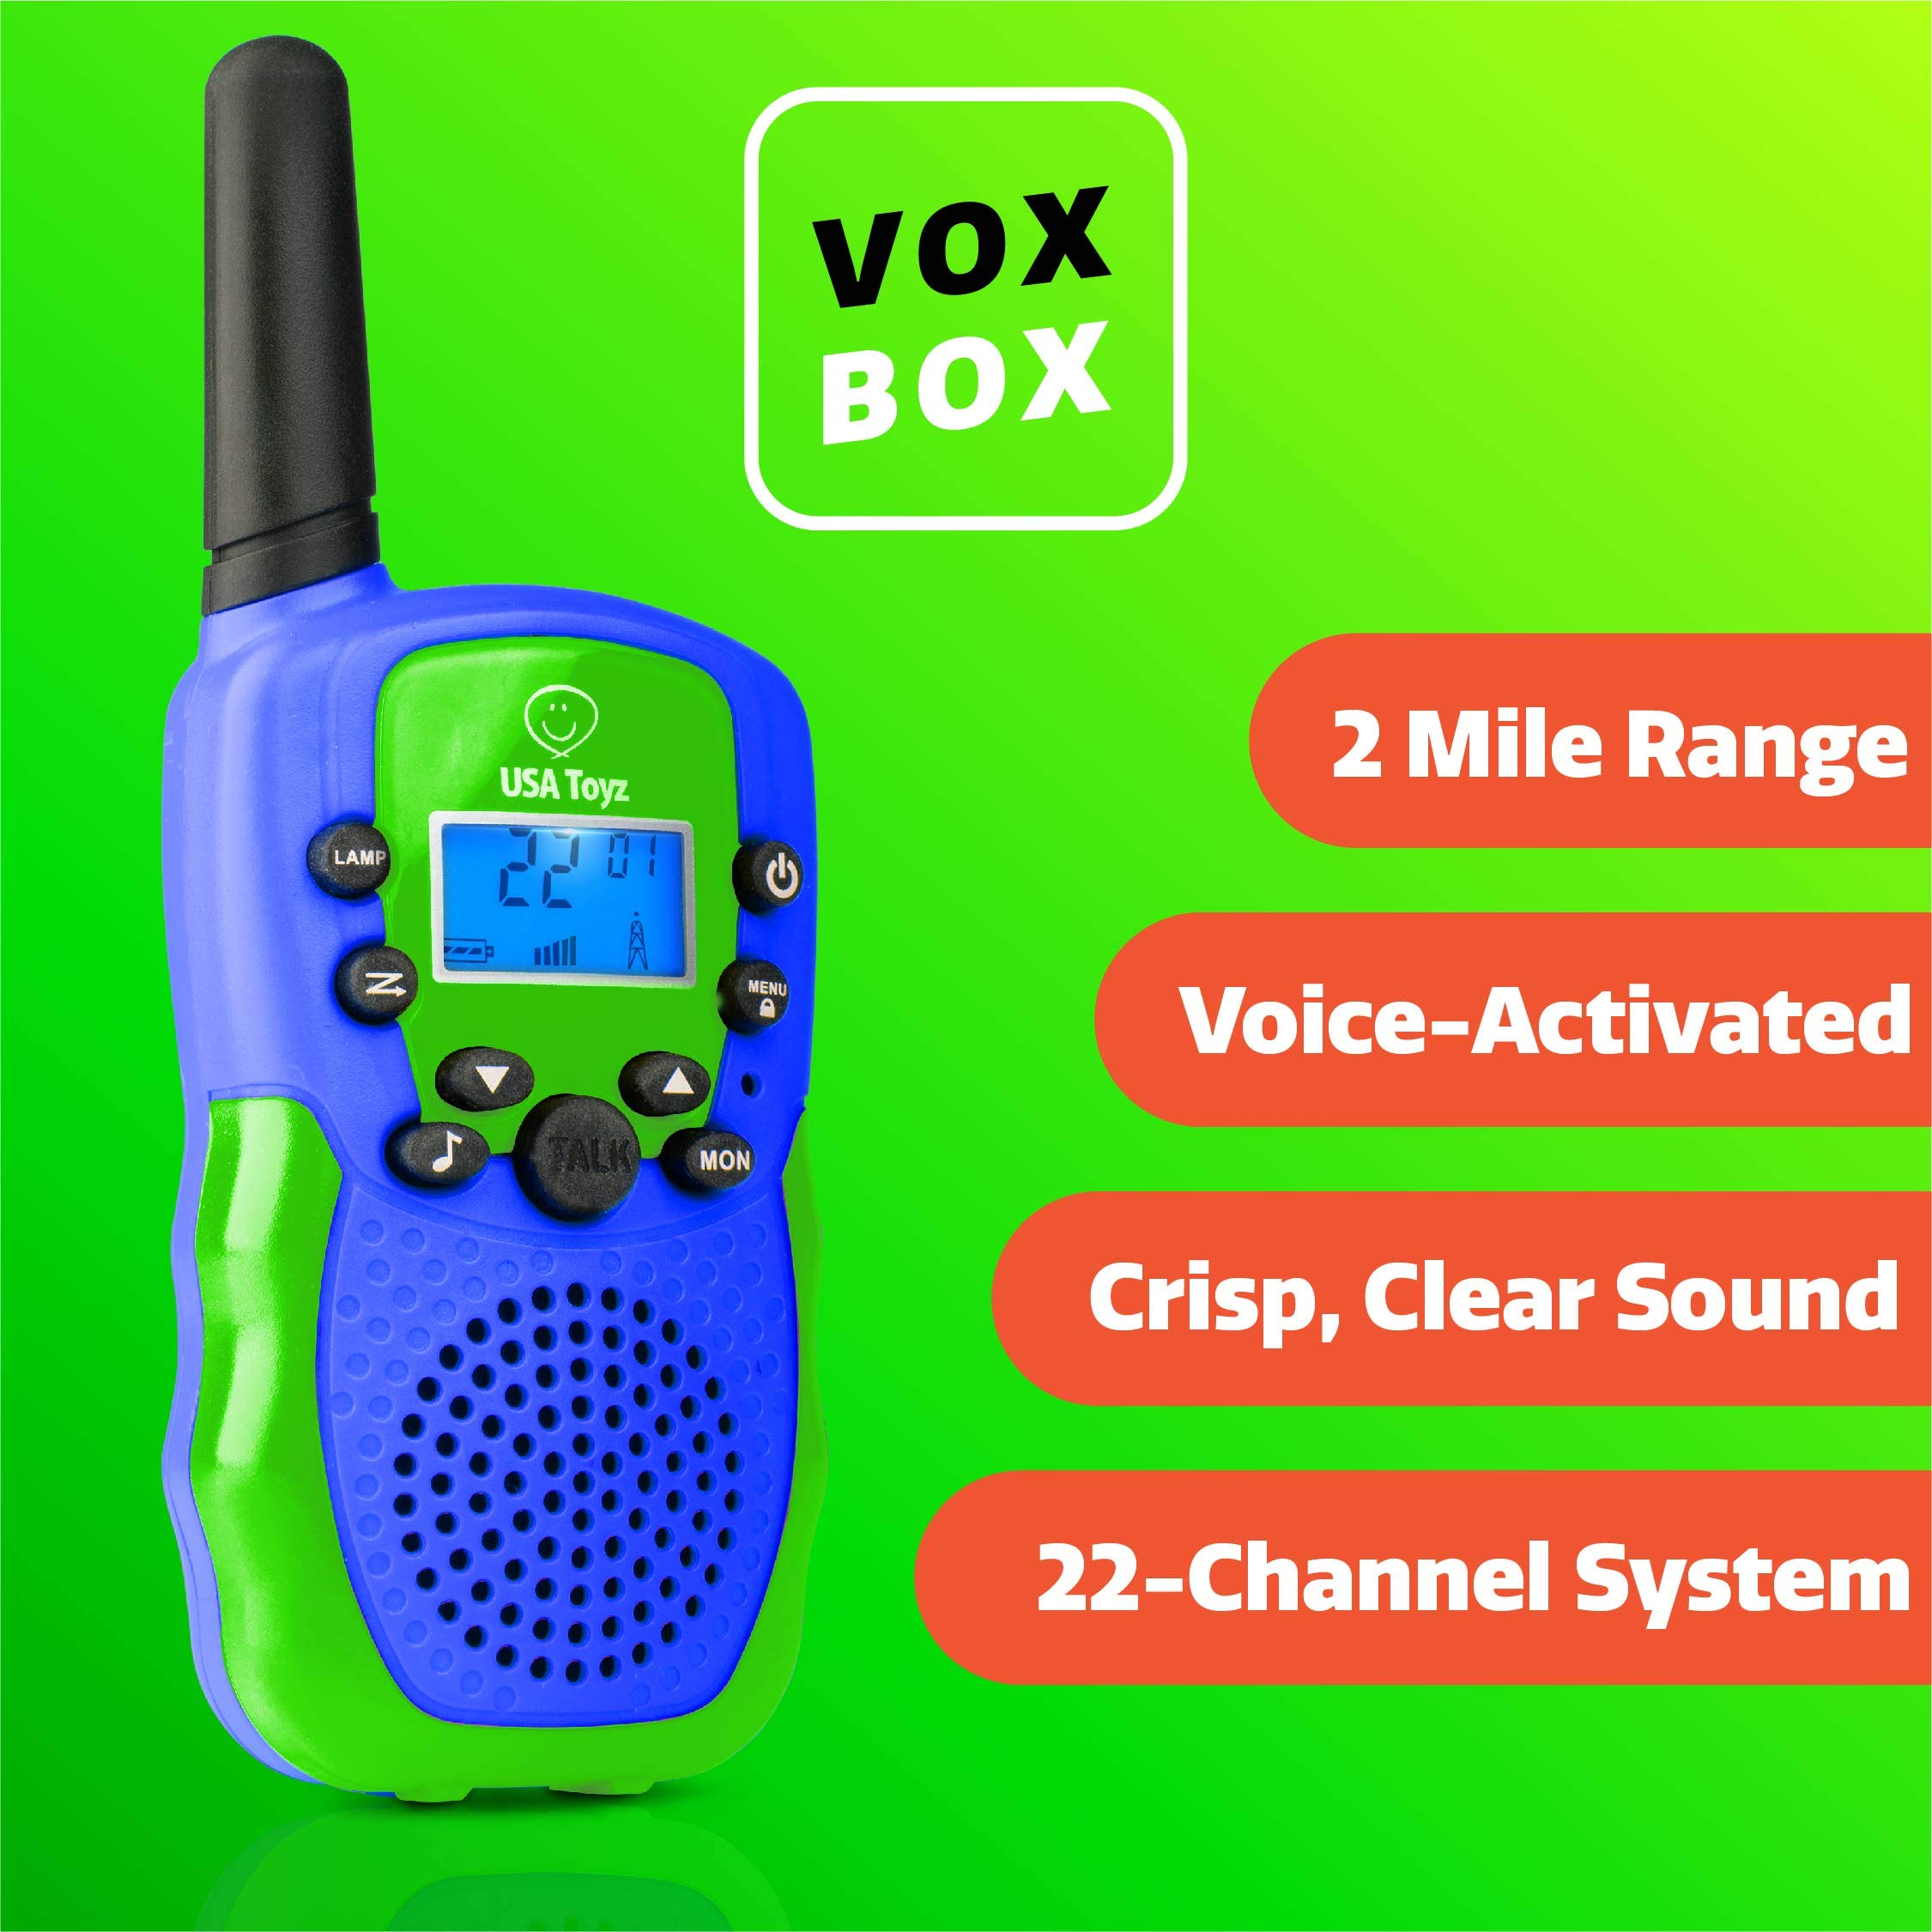 USA Toyz Walkie Talkies for Kids Vox Box Kids Walkie Talkies for Boys Or Girls, Voice Activated Long Range Outdoor Toys Walkie Talkie Set (Blue/Green) by USA Toyz (Image #2)